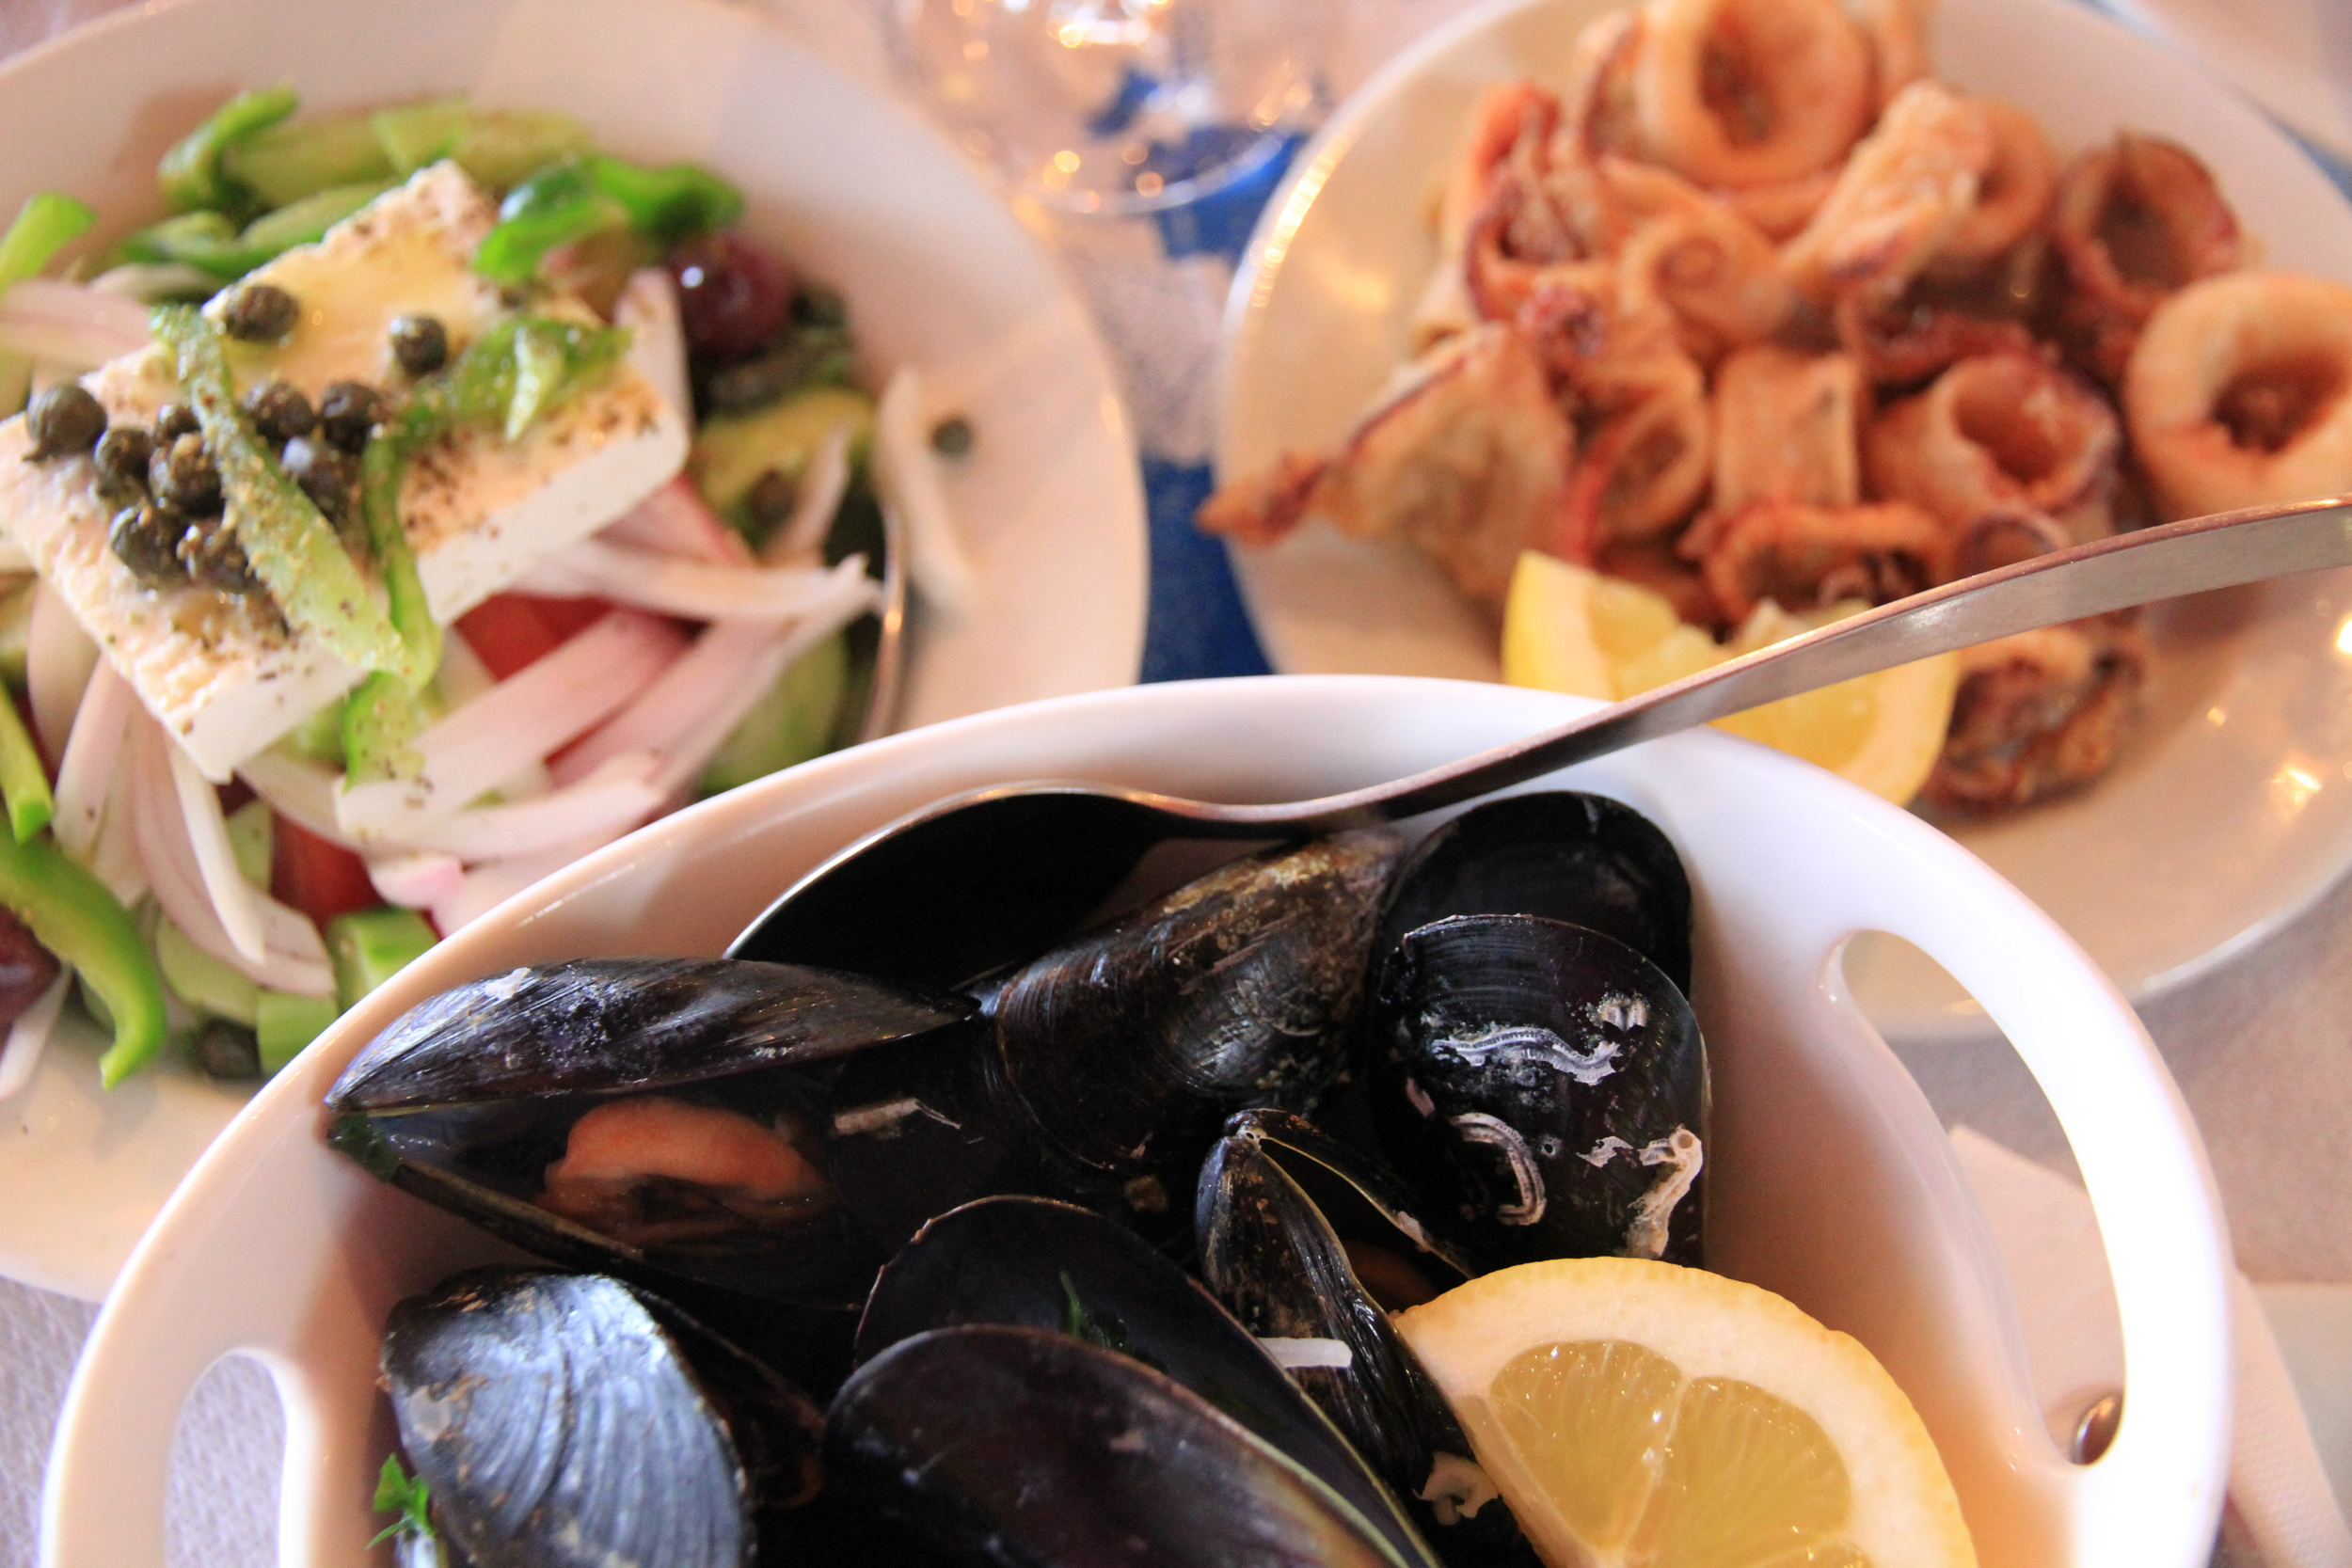 Amazing mussels and squid matched with a Greek salad - loaded with healthy fats and full of goodness